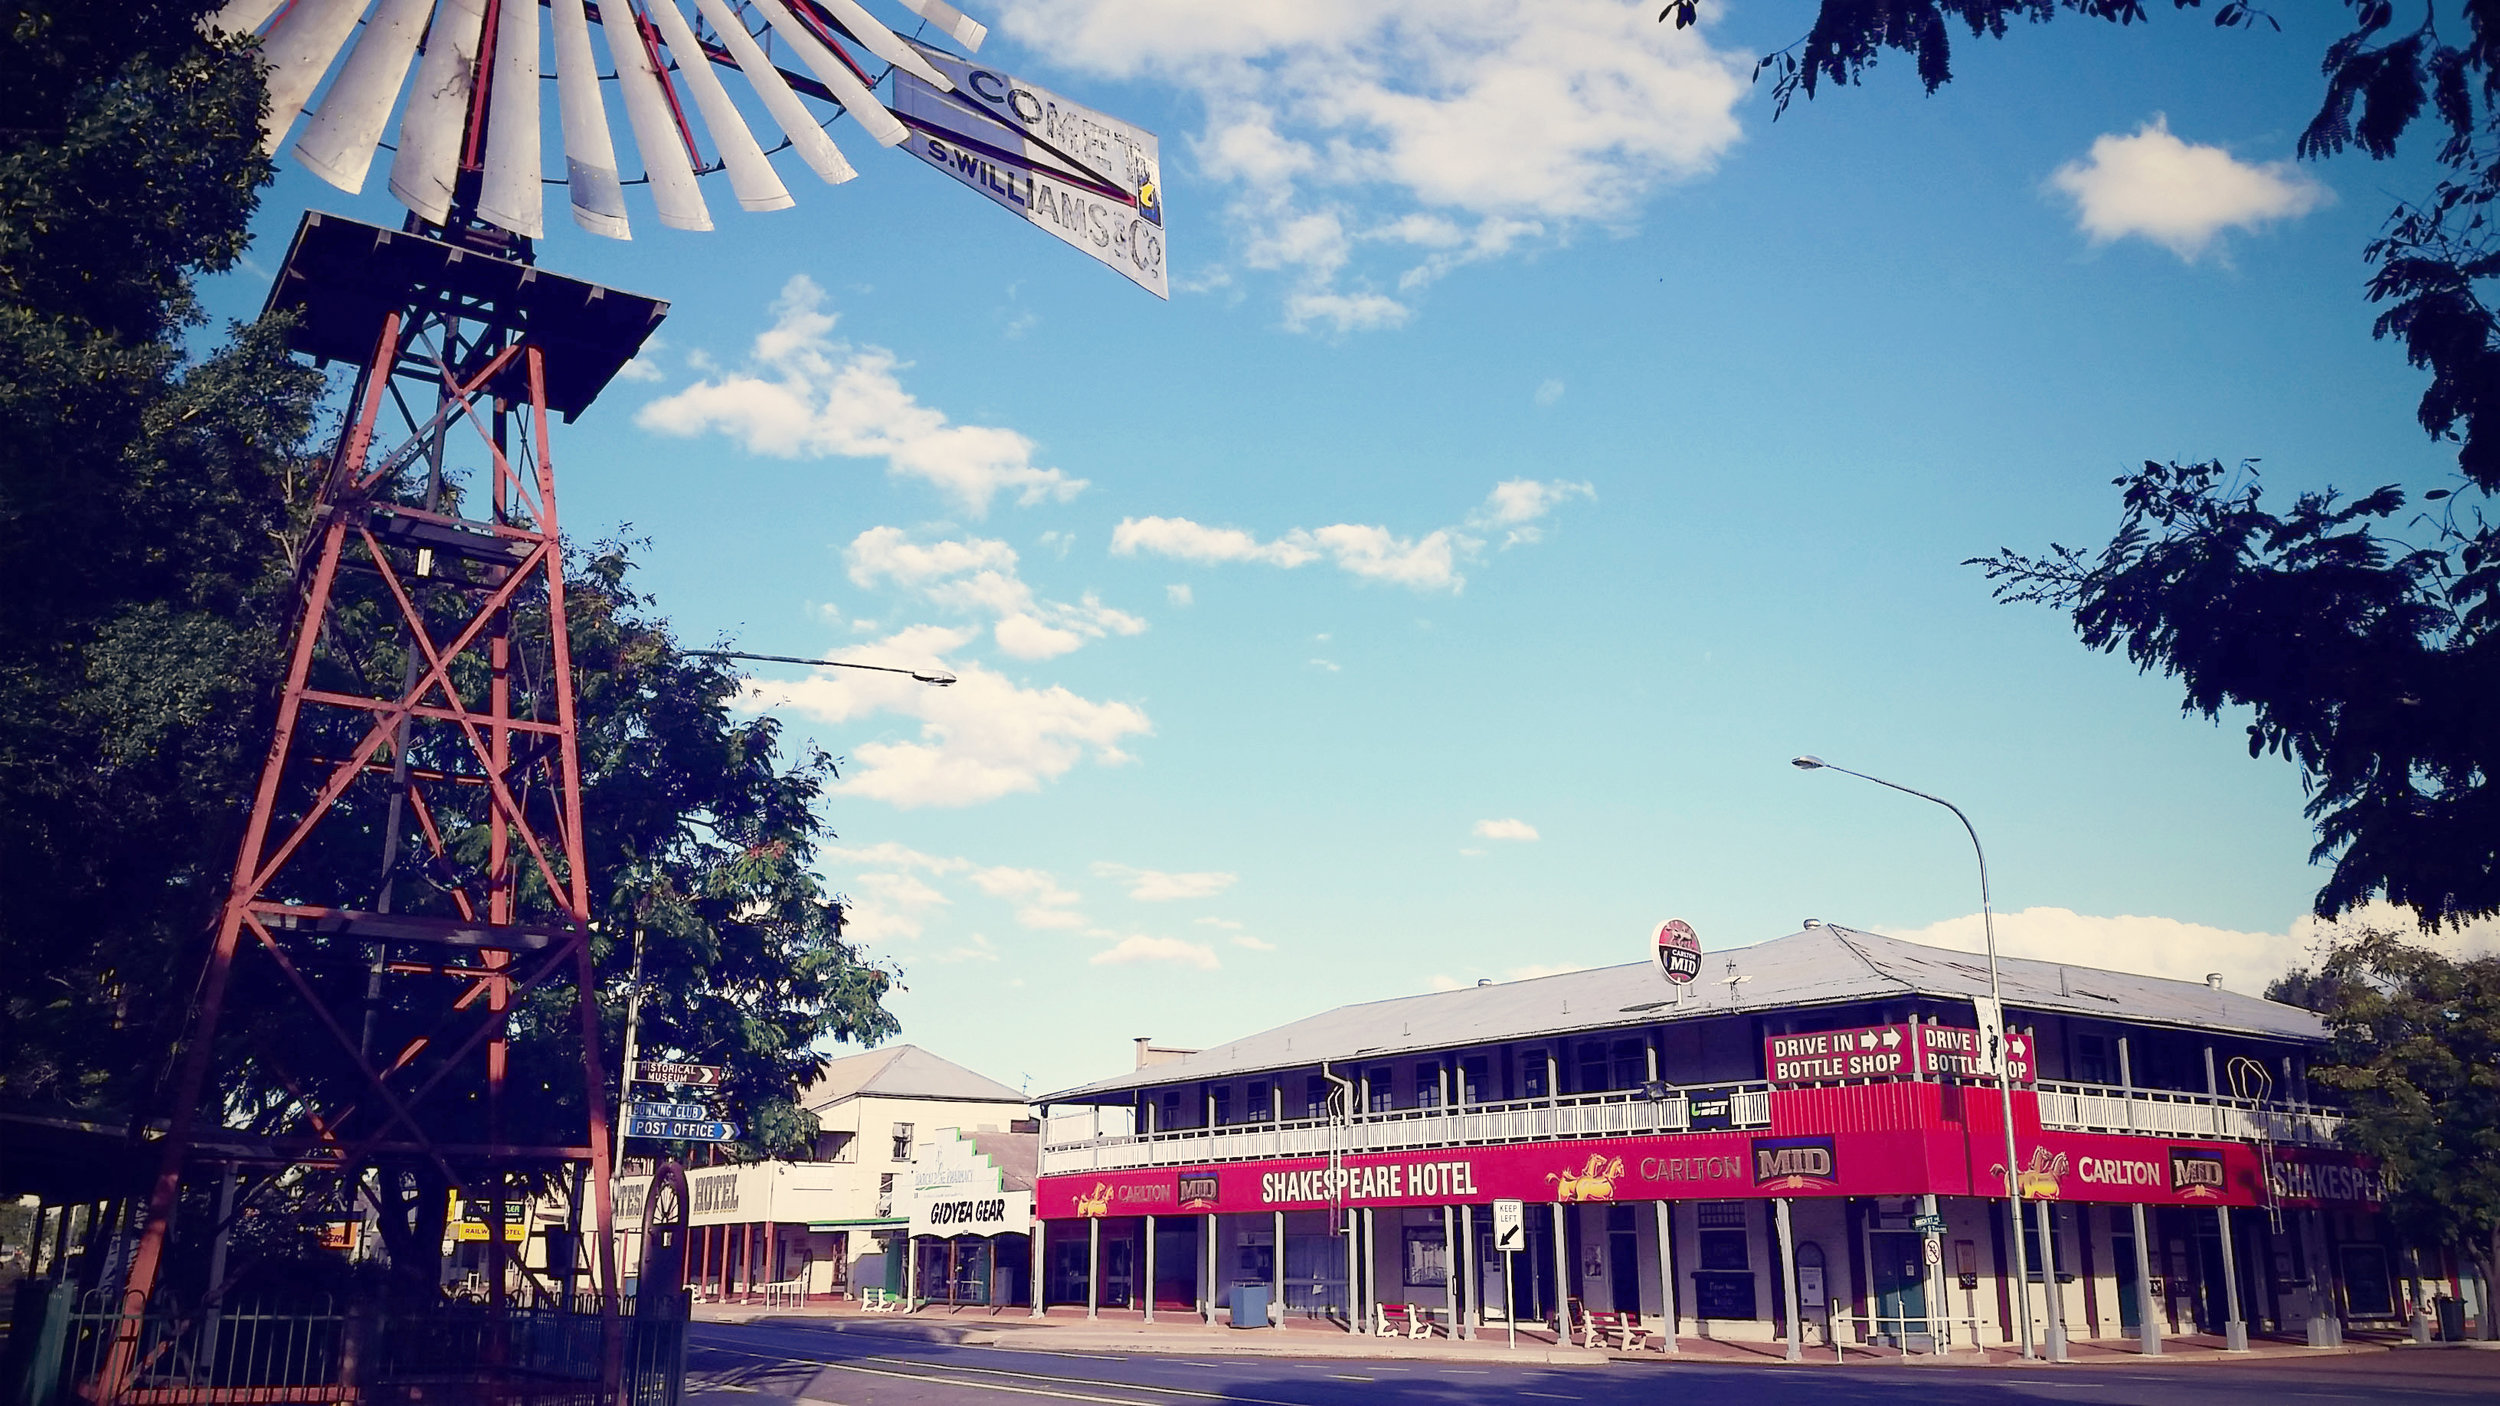 Barcaldine- the home of the Australian Labour movement. It also has an impressive high pub to population ratio. Not sure if the two facts are related.